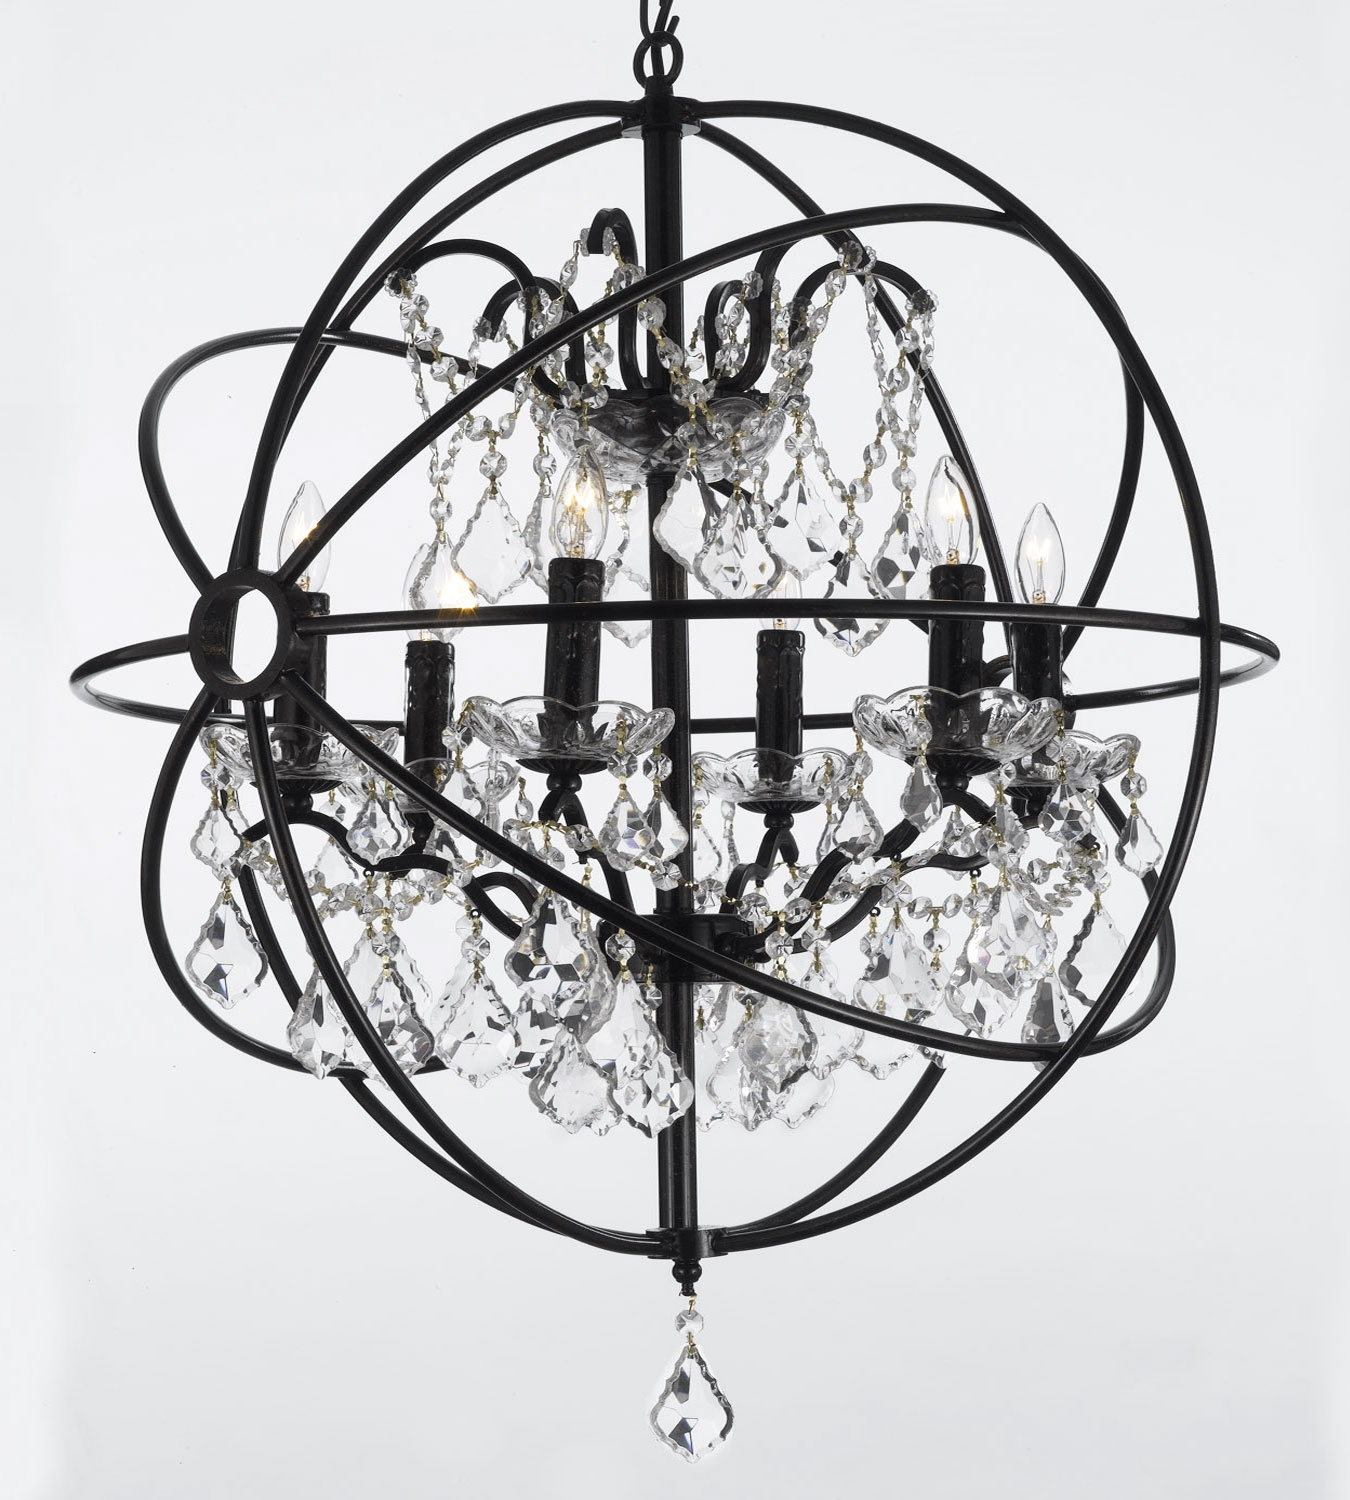 Chandelier Astonishing Iron Orb Chandelier Ideas Foucaults Orb Intended For Orb Chandelier (Image 6 of 15)